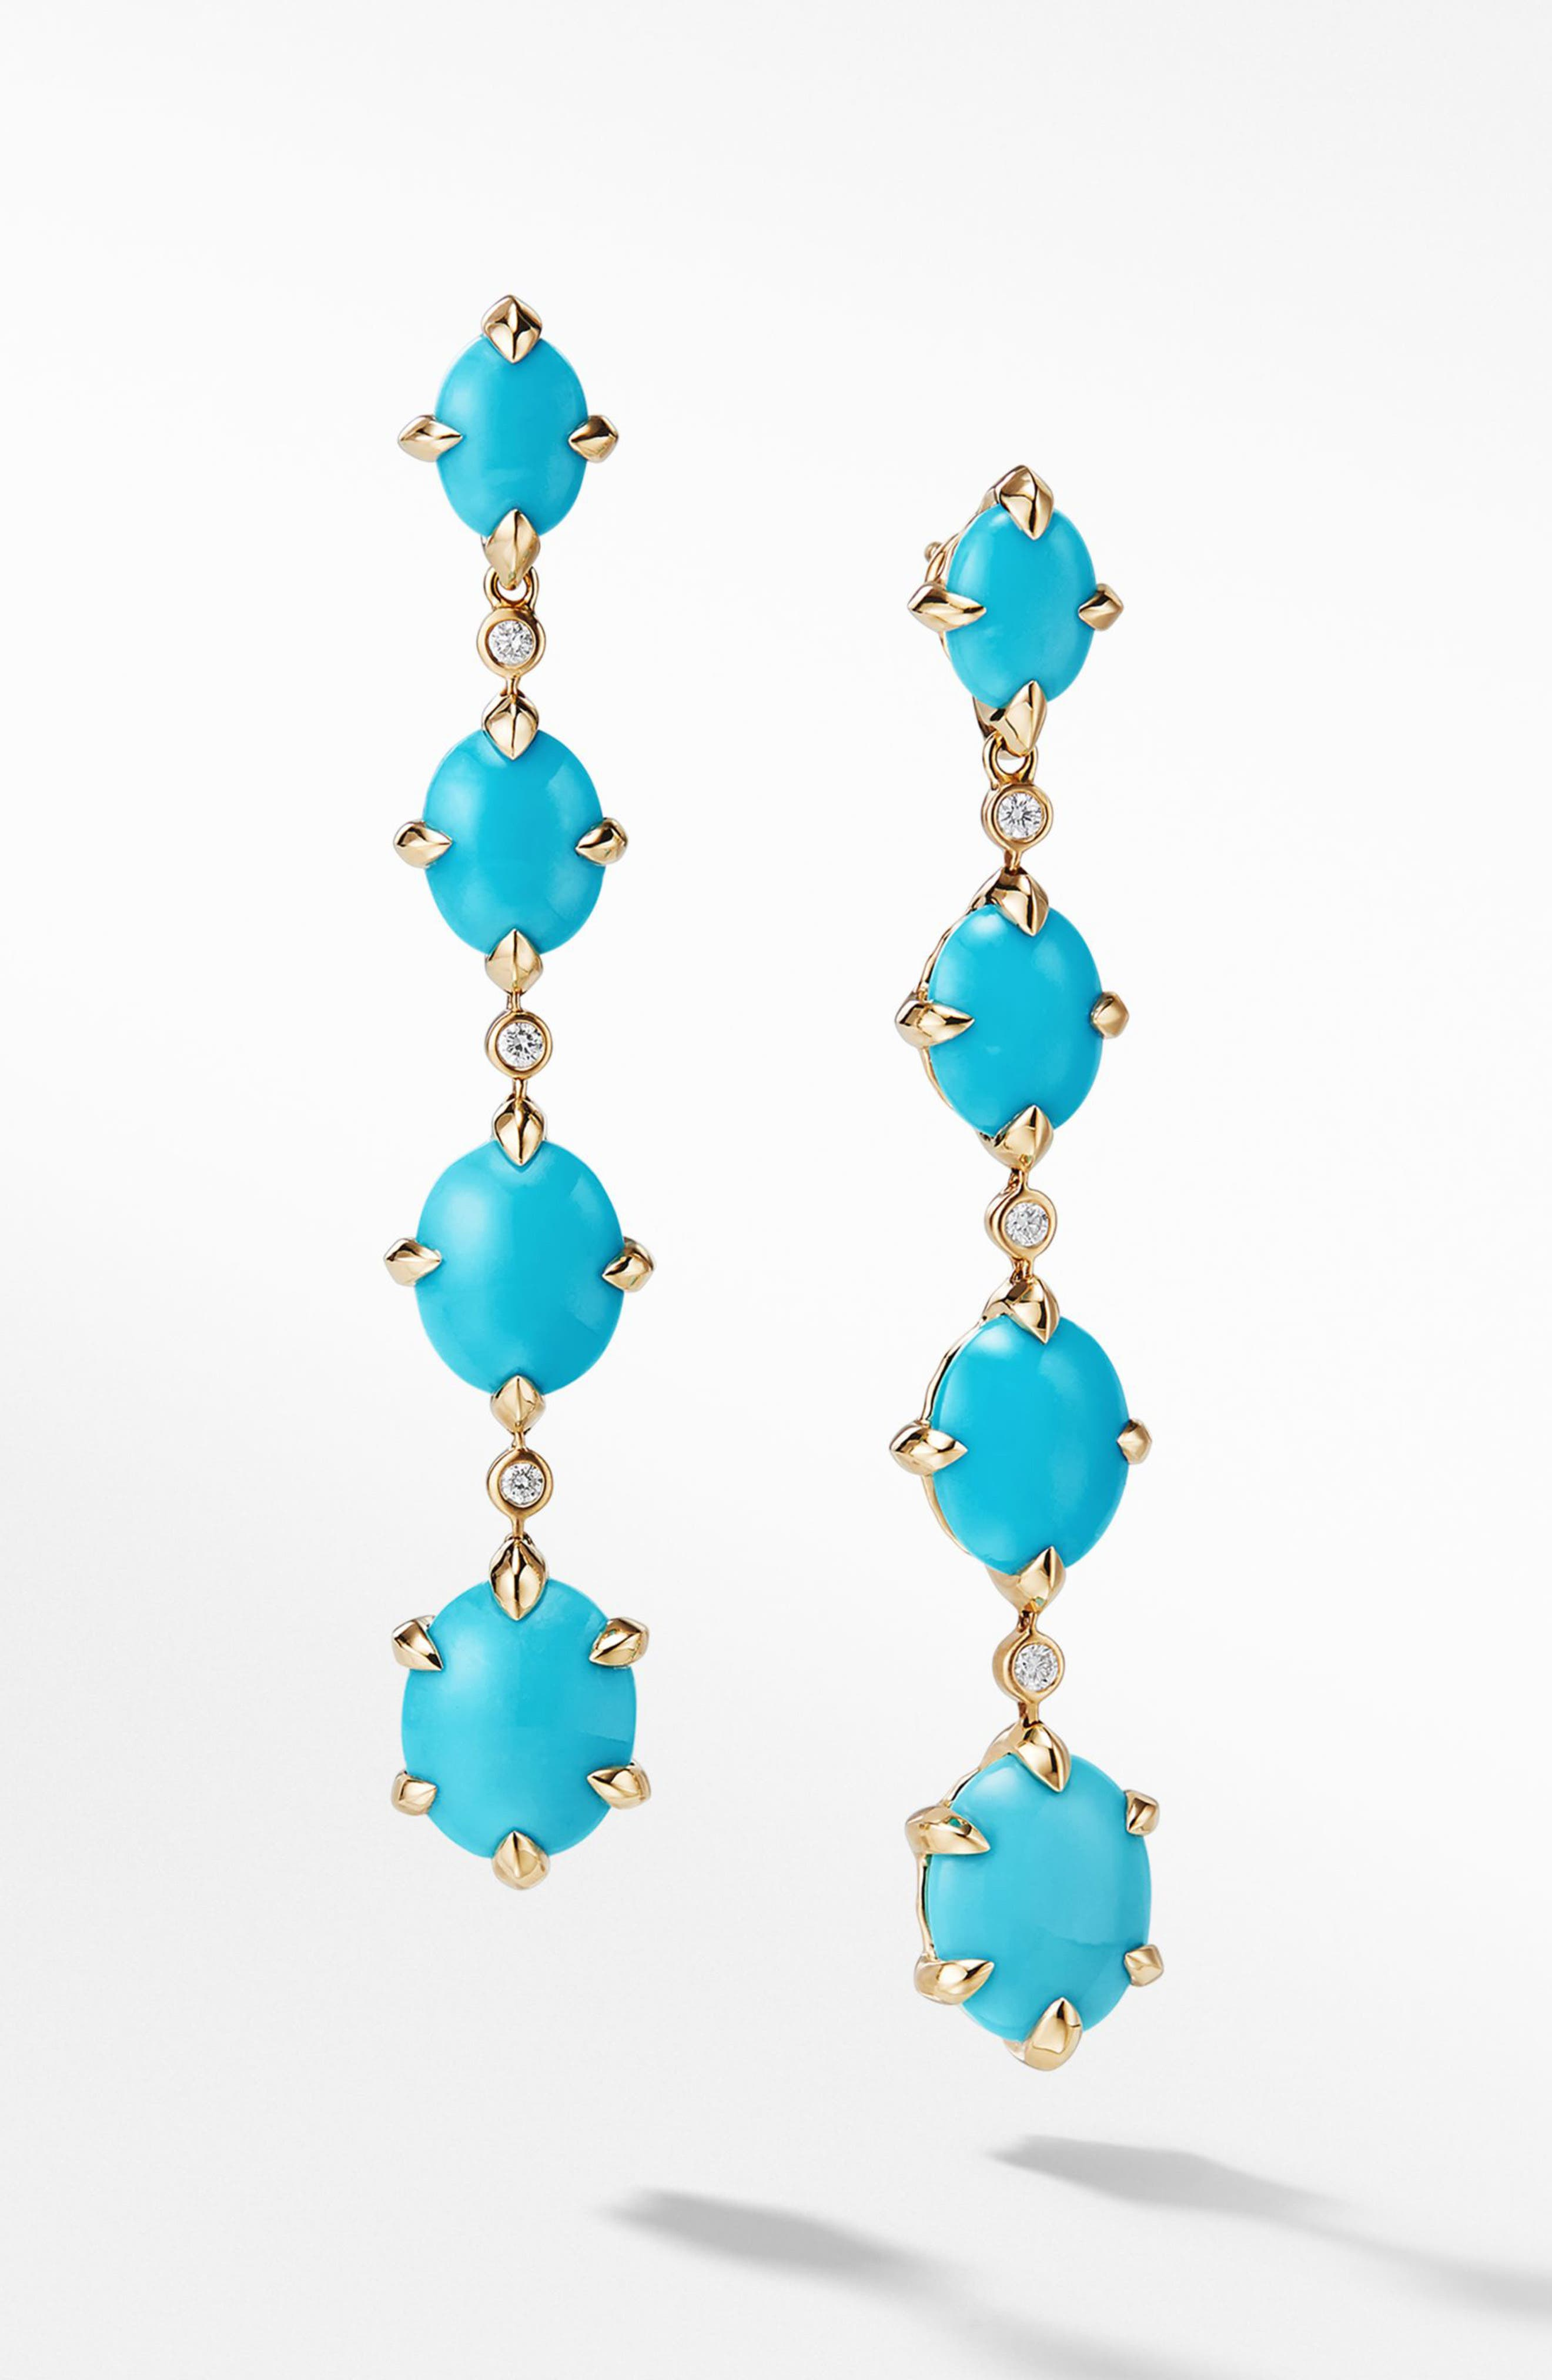 Chatelaine<sup>®</sup> 18k Gold Drop Earrings with Diamonds,                         Main,                         color, GOLD/ DIAMOND/ TURQUOISE